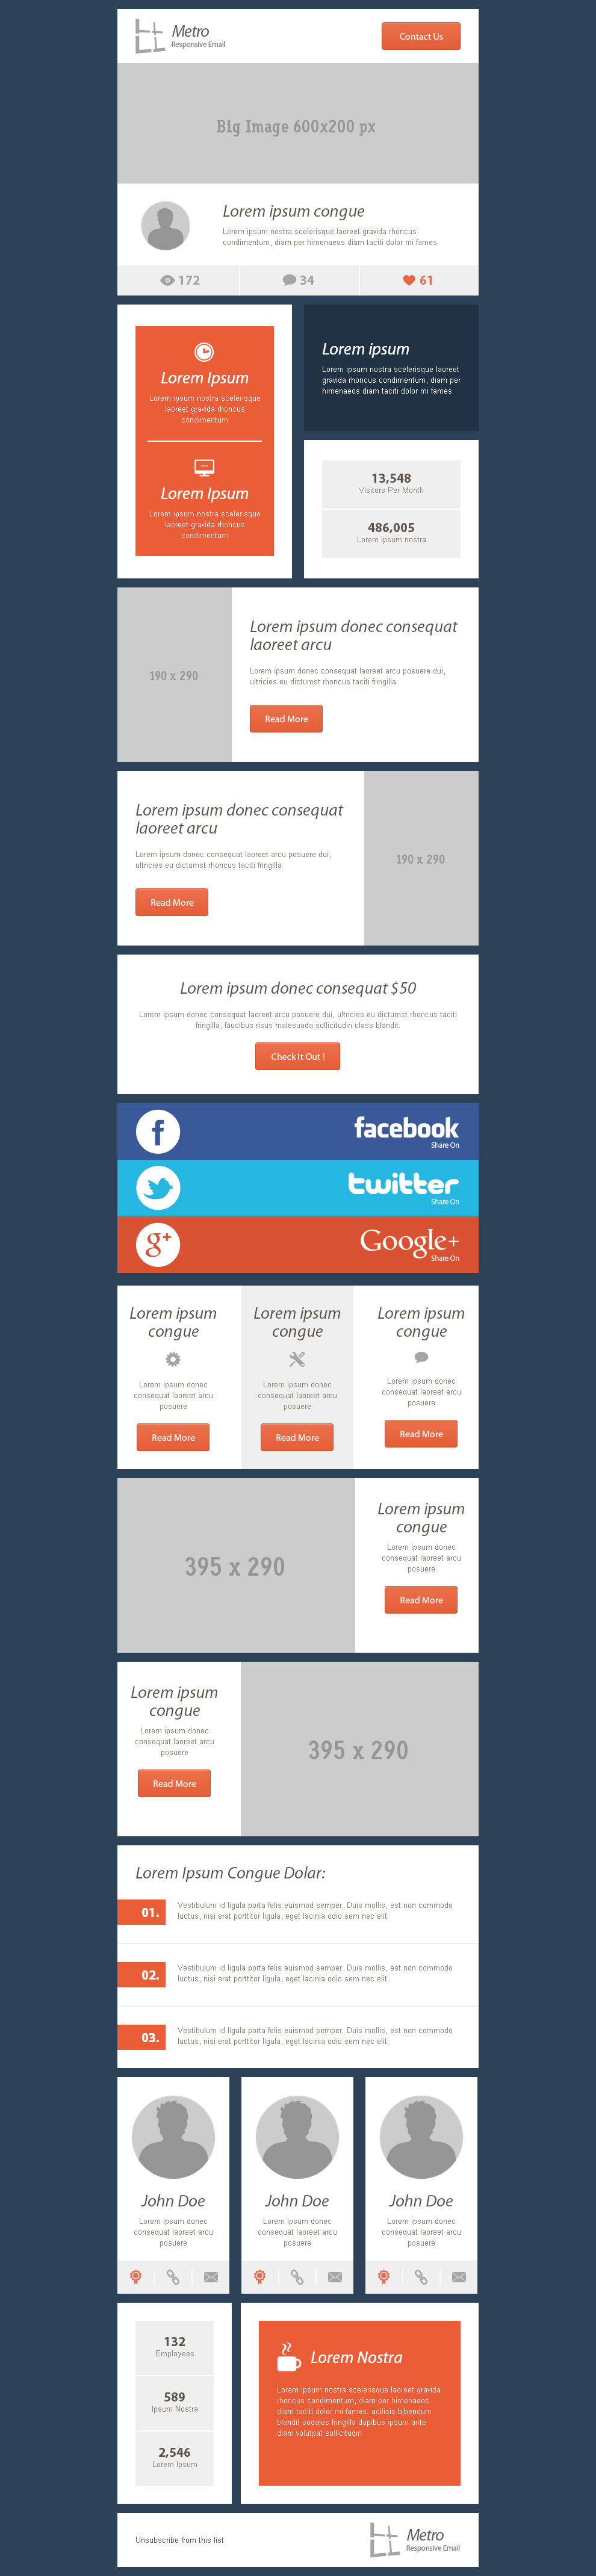 Top 5 Email Template Design Ideas | Email Design | Pinterest ...